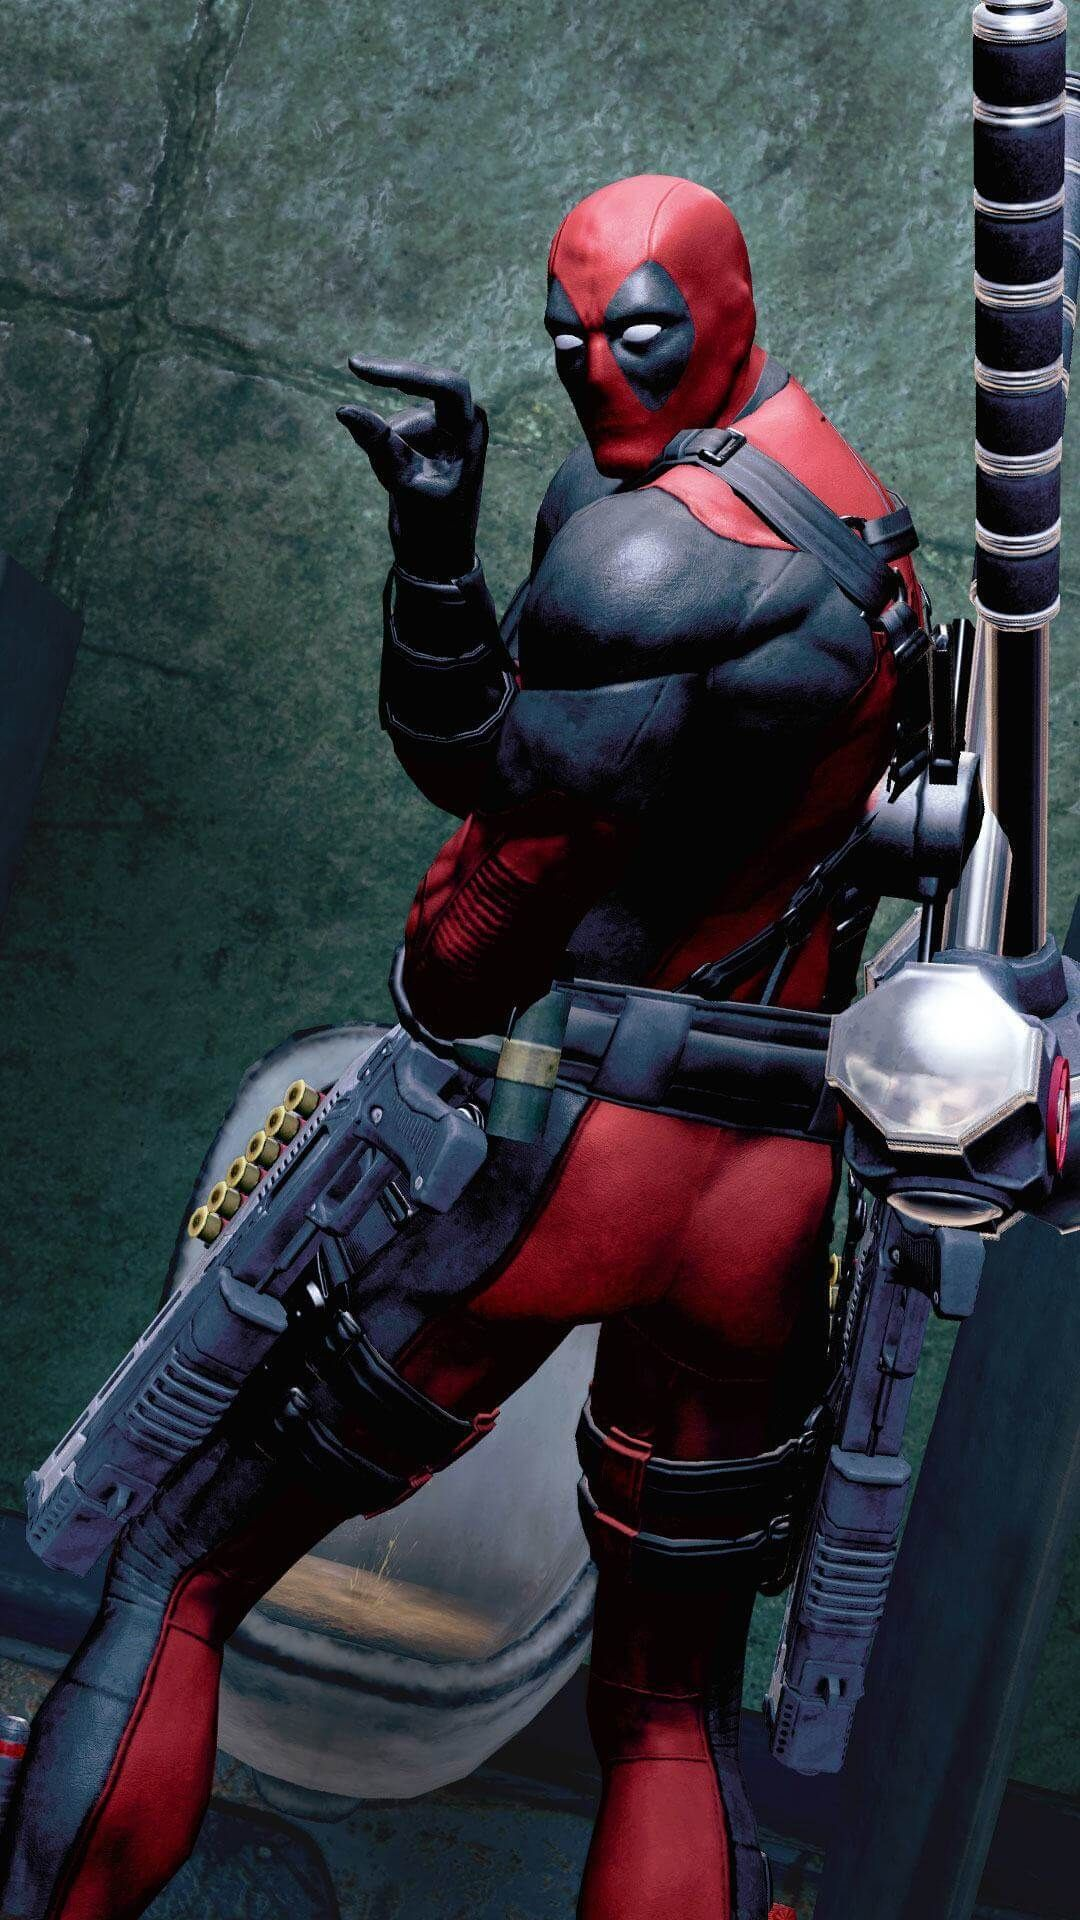 Funny deadpool wallpaper iphone 6 plus hd marvel comics funny deadpool wallpaper iphone 6 plus hd voltagebd Choice Image